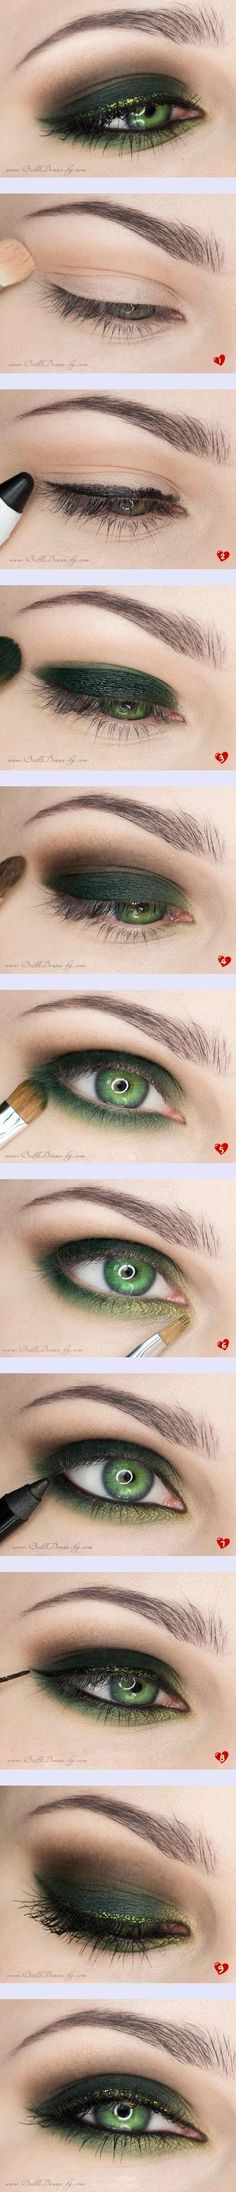 Green Smokey Eye!